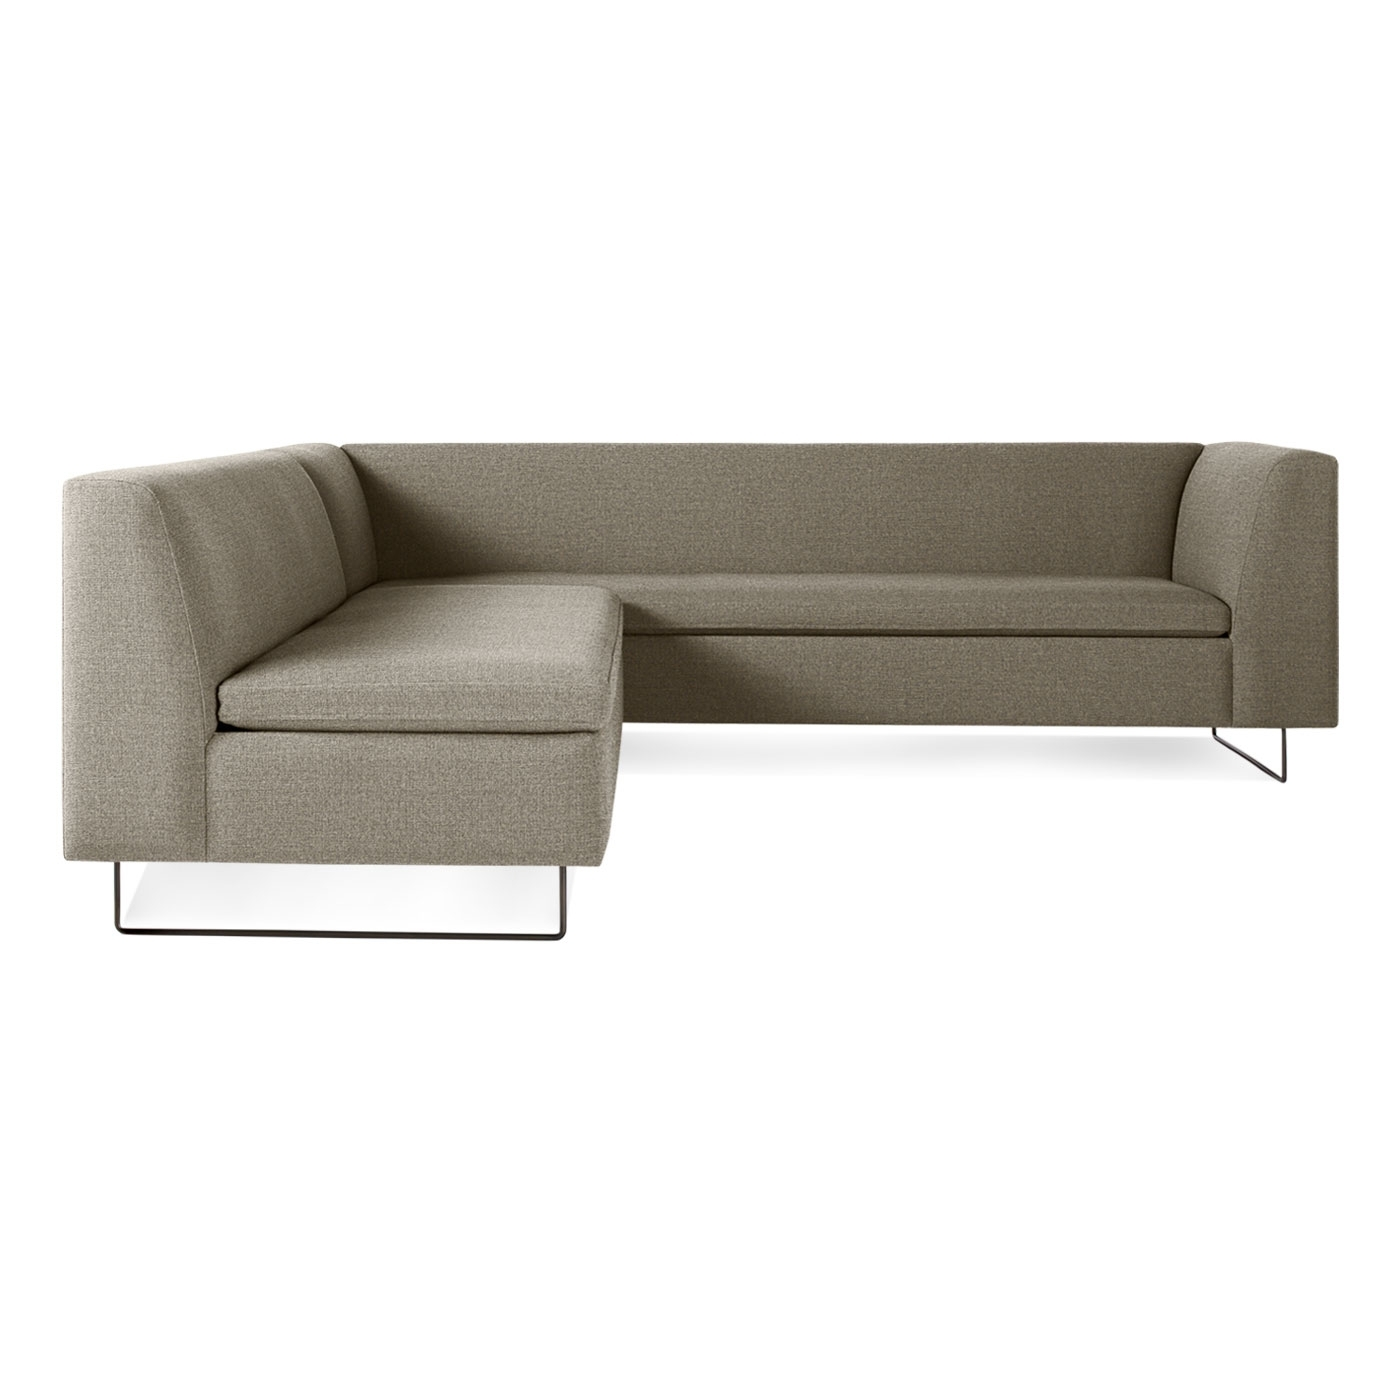 Ontario Sectional Sofas Within Well Liked Bonnie & Clyde Modular Fabric Sectional Sofa (View 19 of 20)